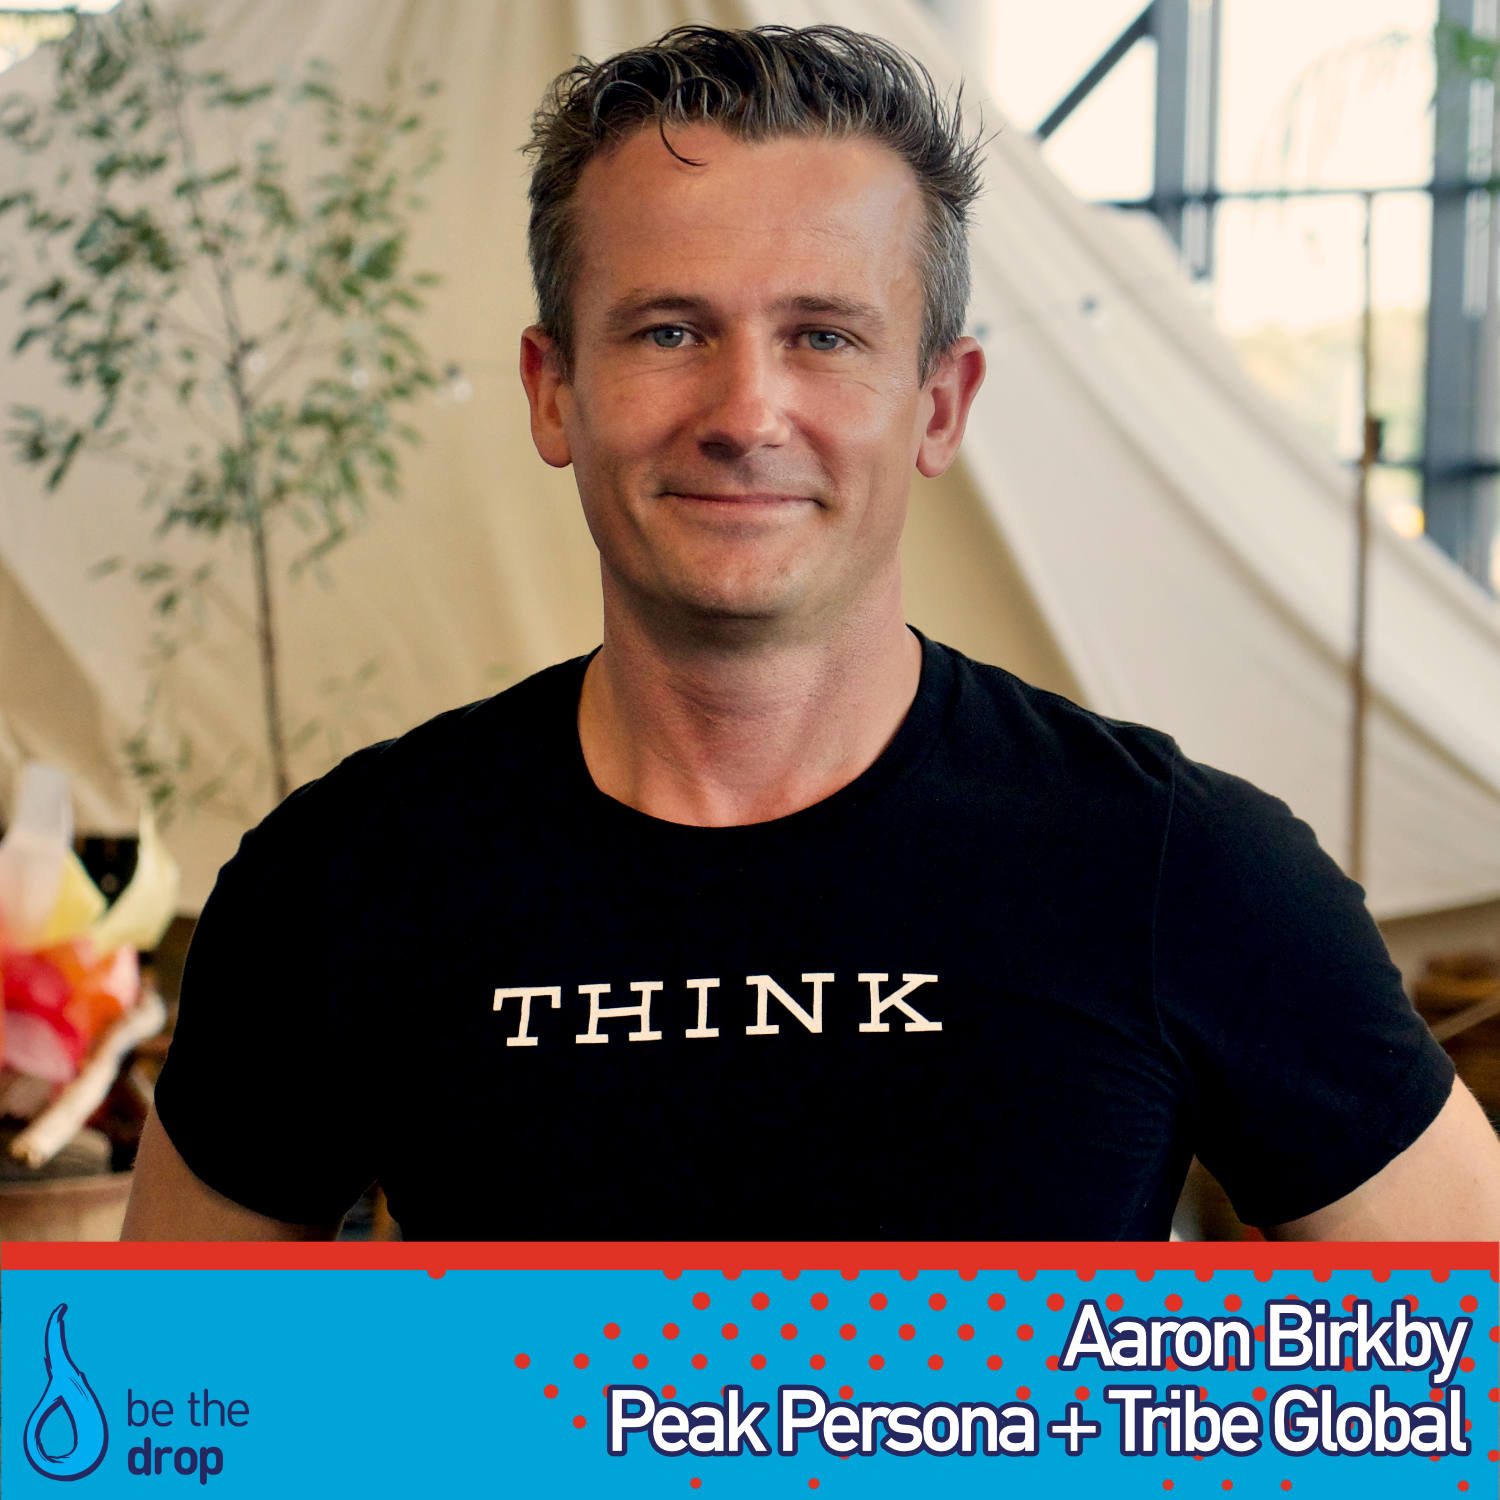 Aaron Birkby Discusses Peak Performance Persona